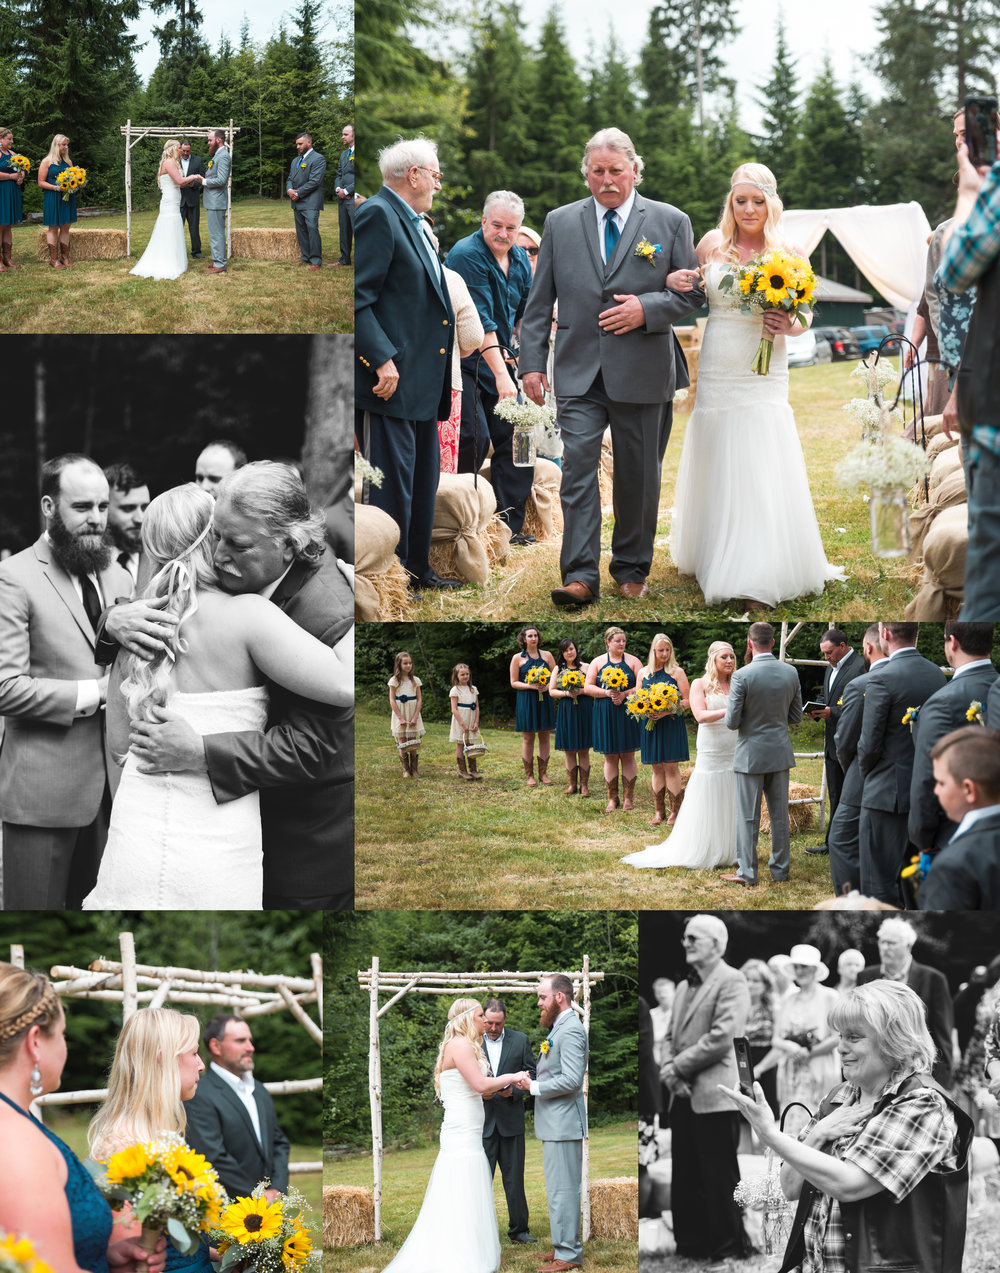 Astoria Wedding Photographer 4.jpg